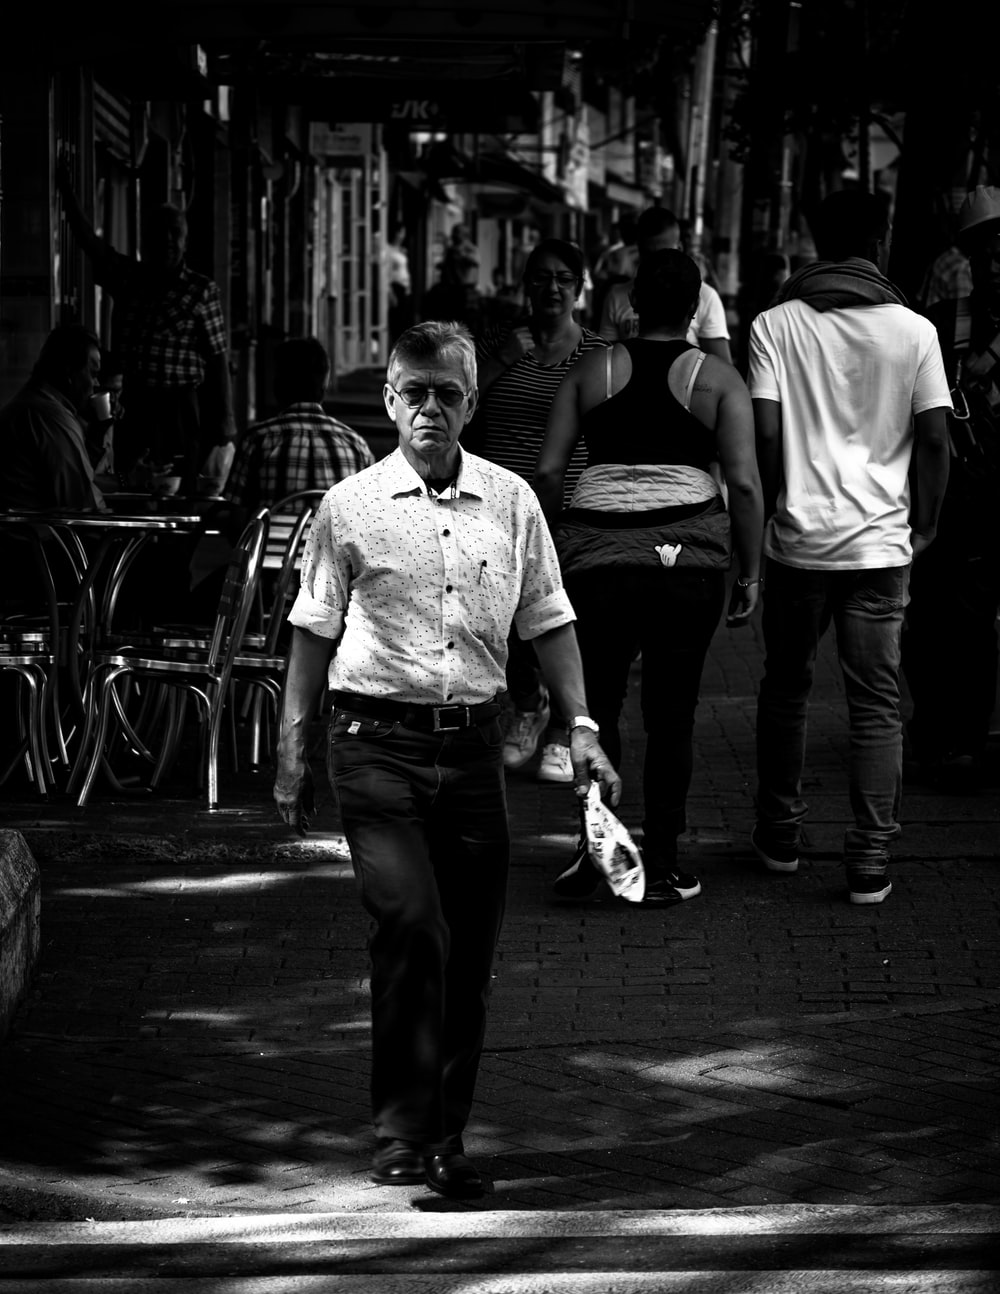 grayscale photo of man in dress shirt and pants standing on sidewalk